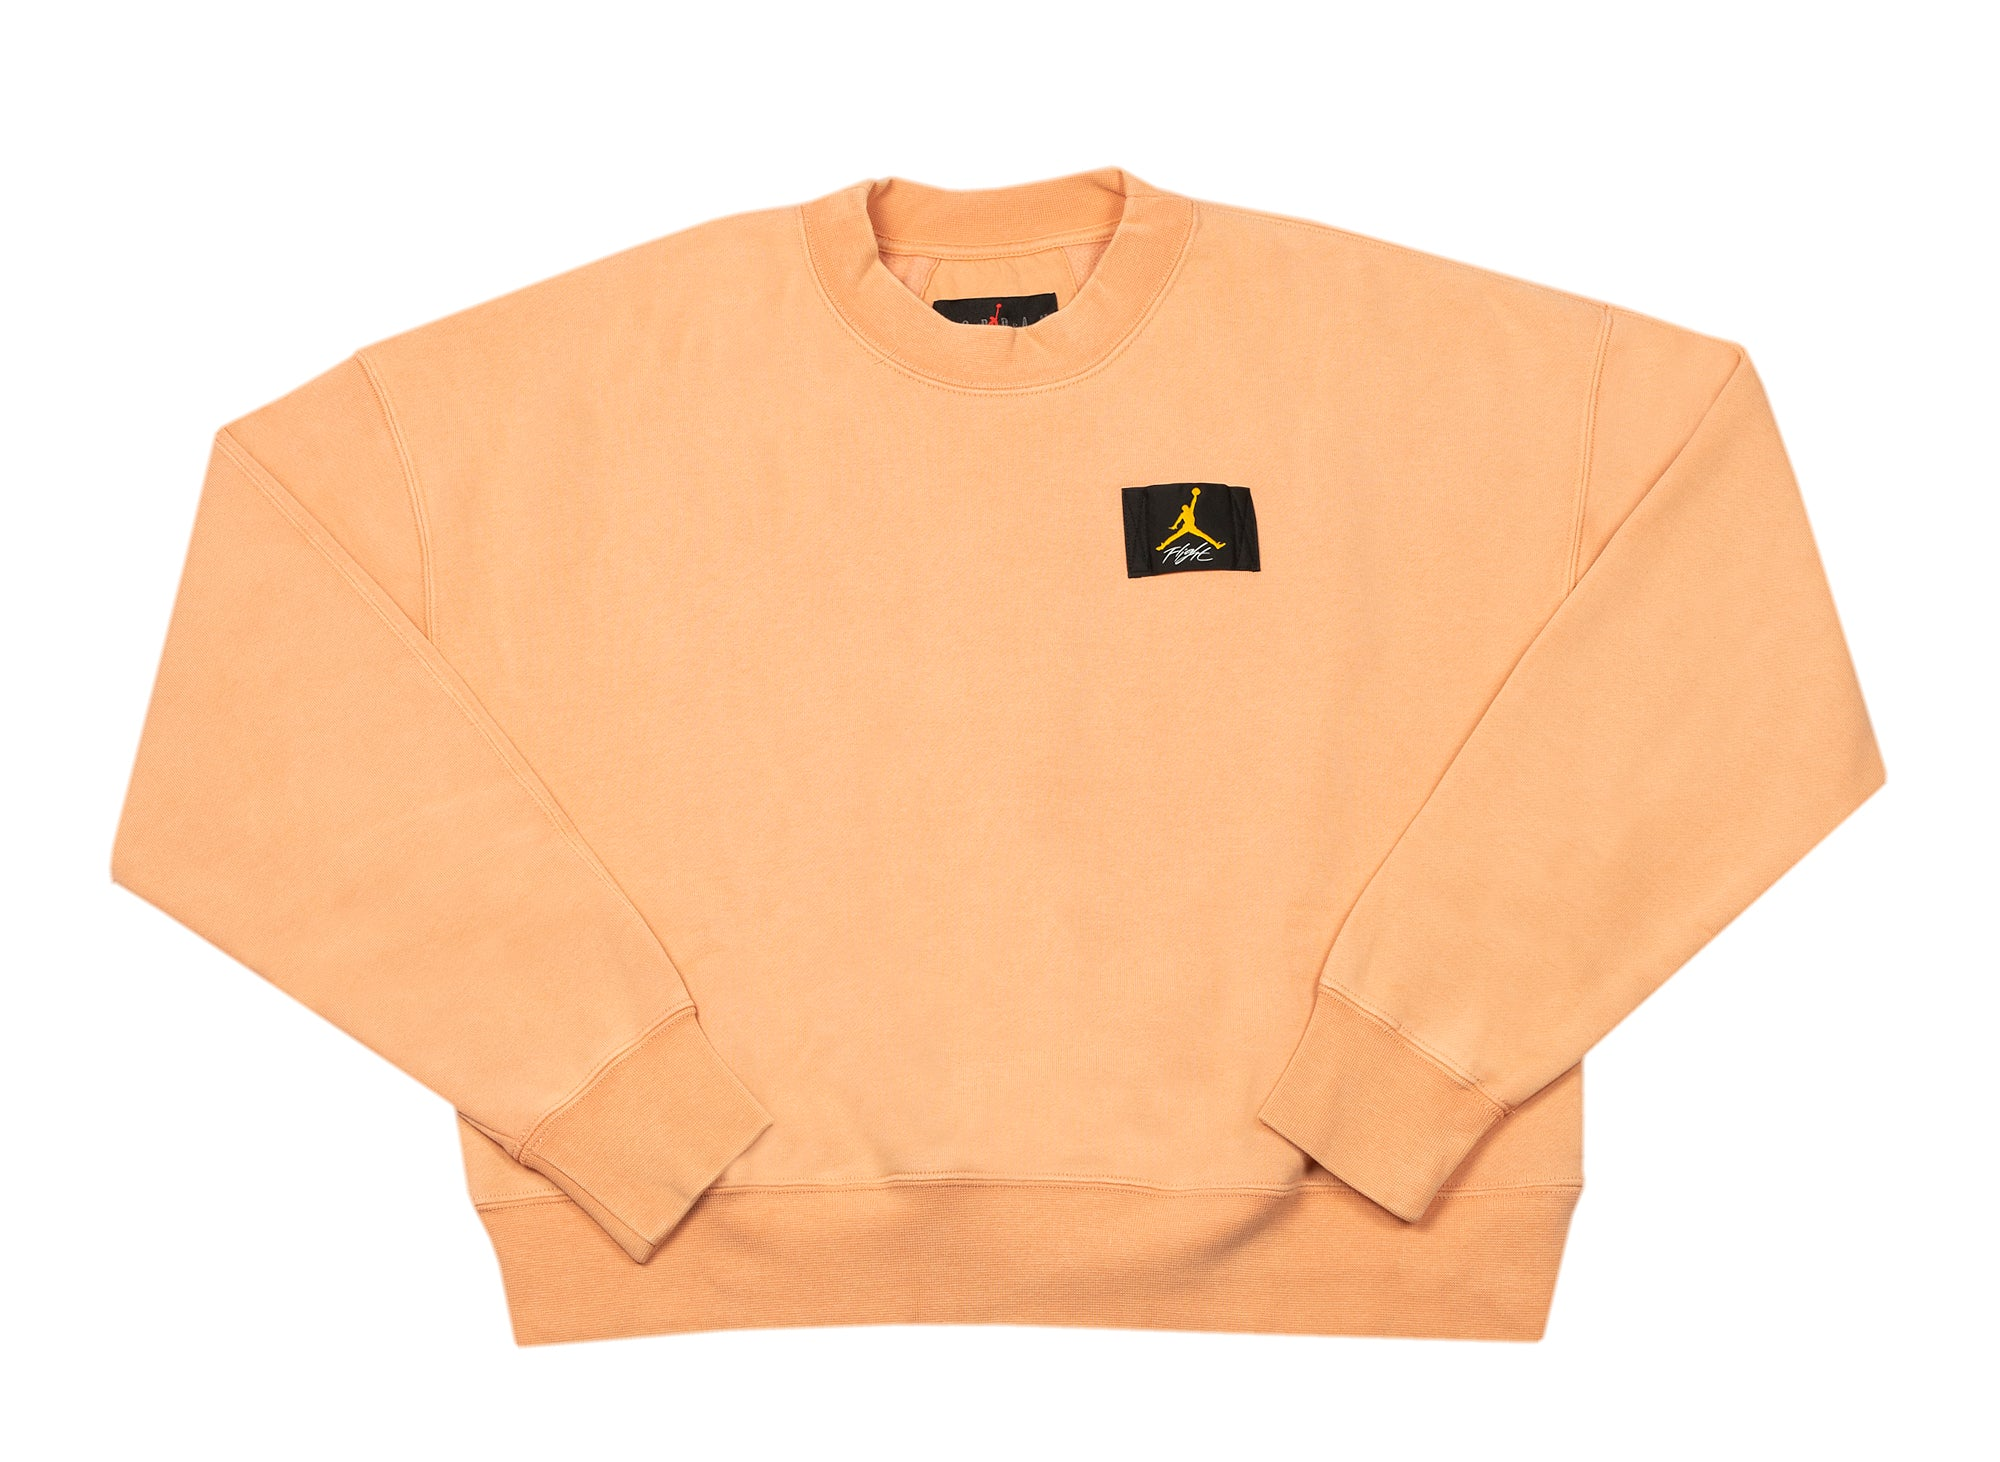 Women's Jordan Flight Fleece Crewneck in Apricot xld